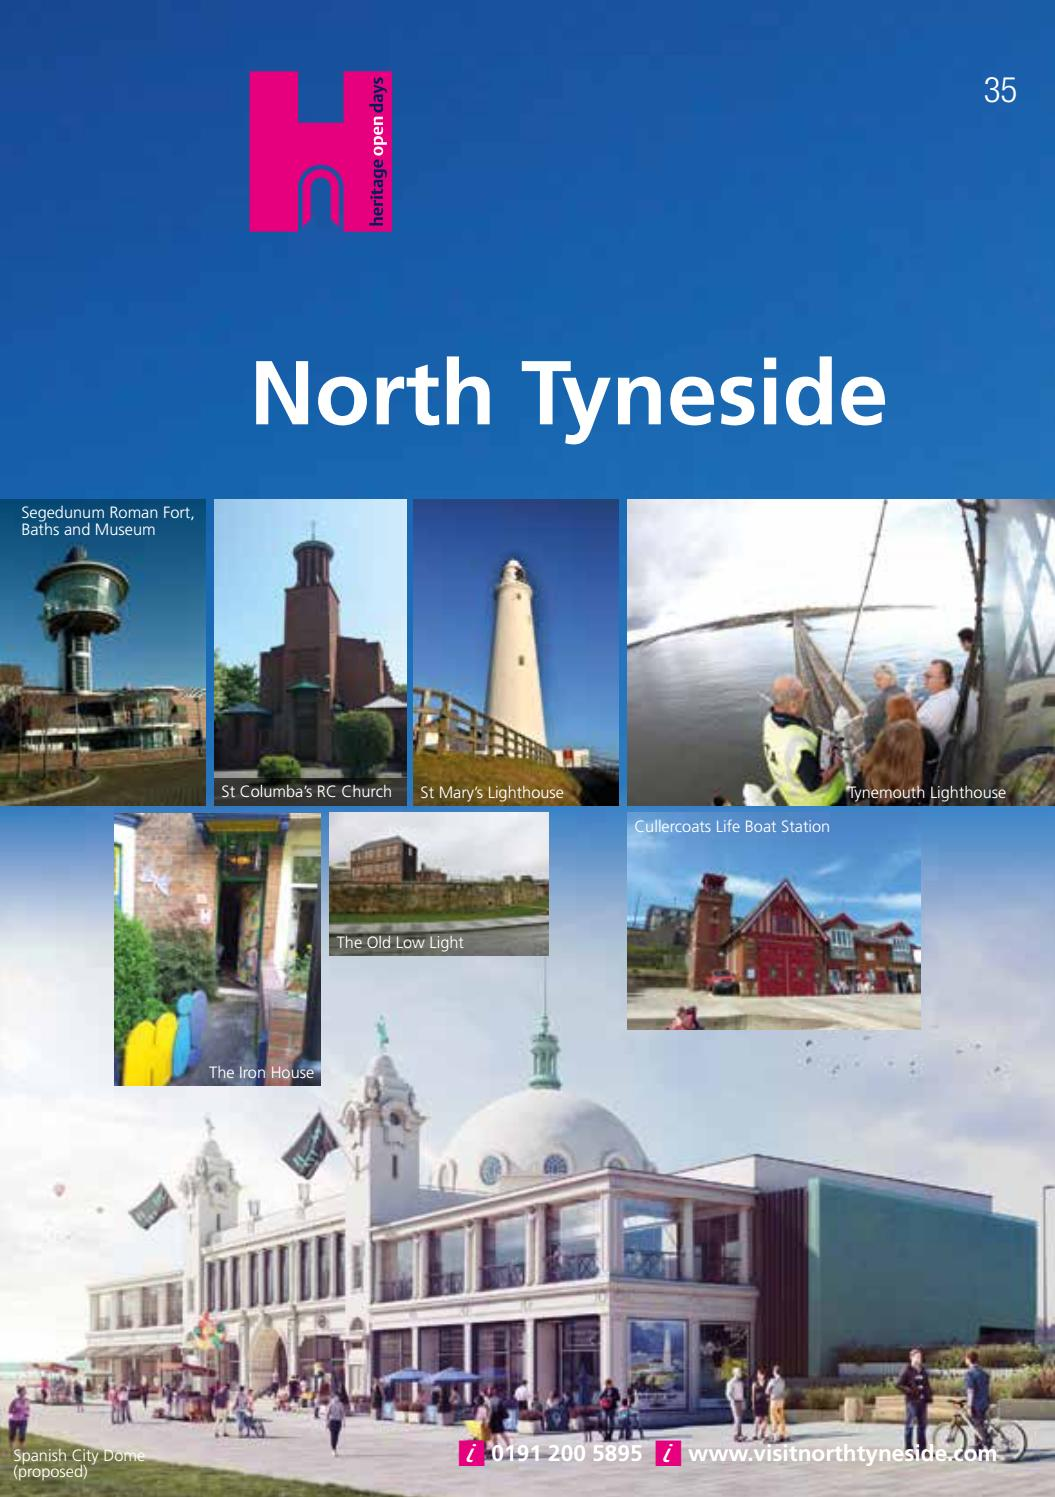 Tyneside Foyer Open Day : North tyneside heritage open days by visit